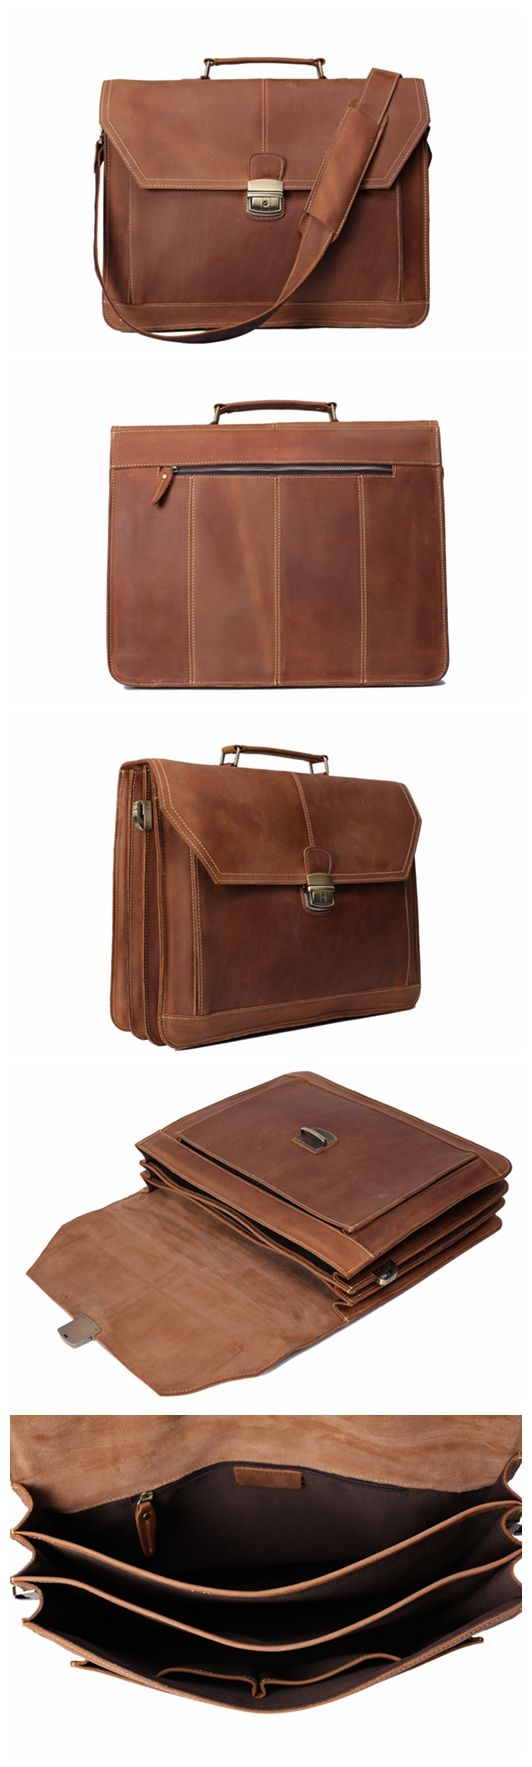 Handmade Vintage Leather Briefcase Men Messenger Bag Laptop Bag